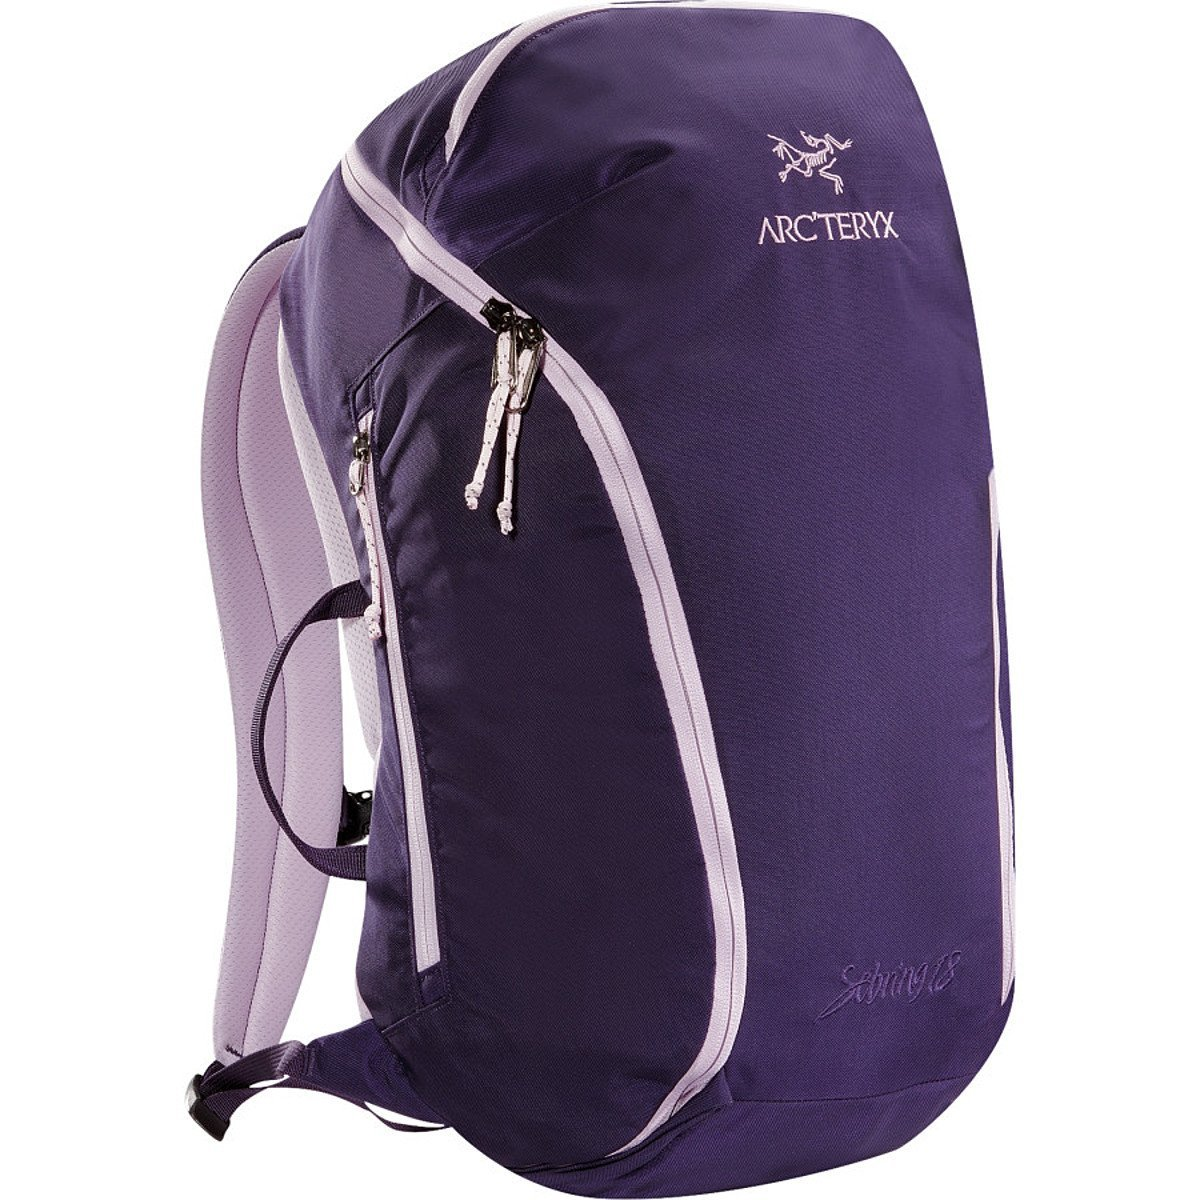 Arc'teryx Sebring 18 Backpack Blackberry, One Size